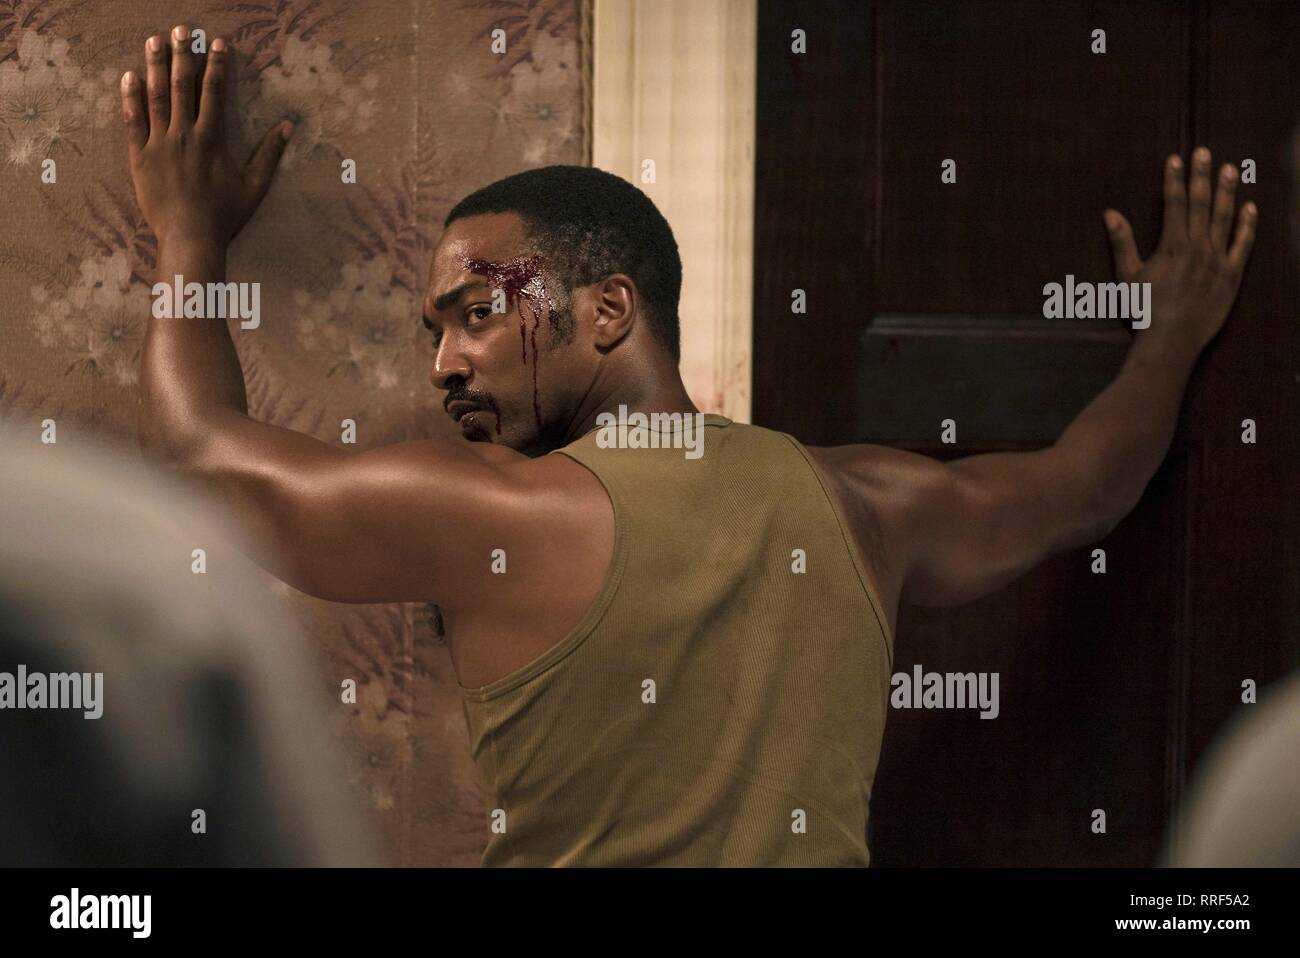 DETROIT, ANTHONY MACKIE, 2017 - Stock Image